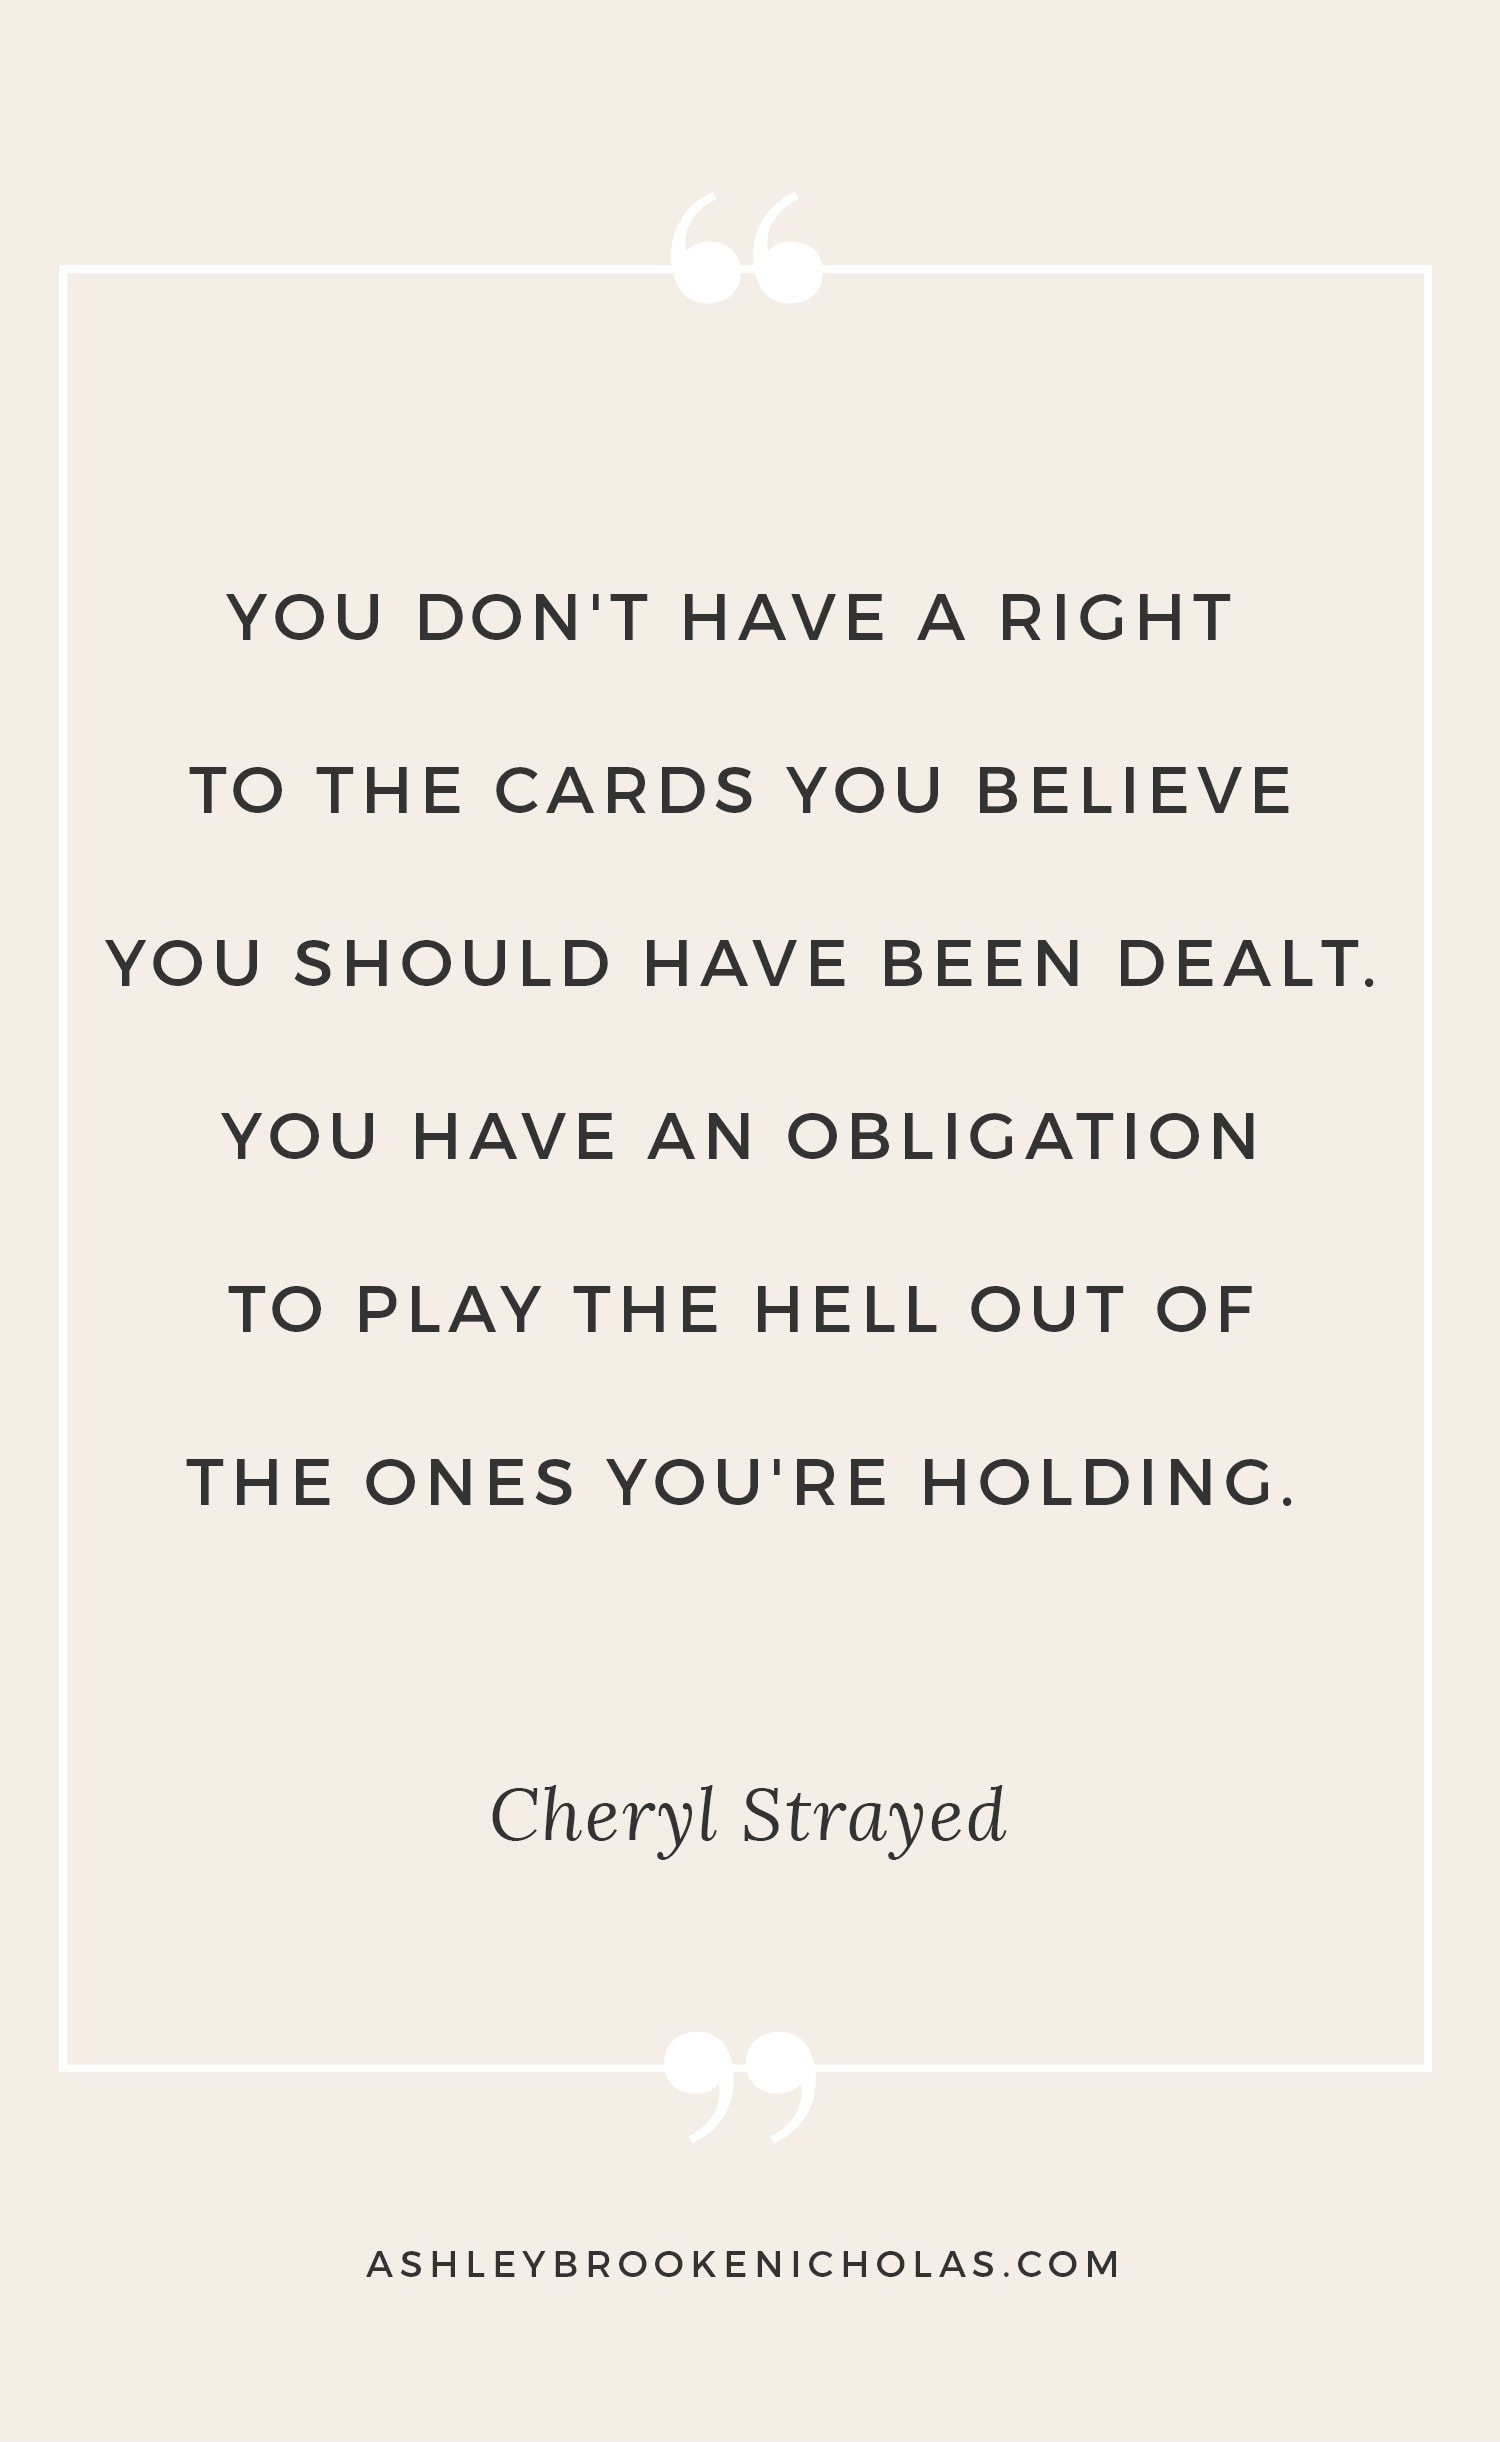 Cheryl Strayed Quotes That Will Change Your Life Ashley Brooke